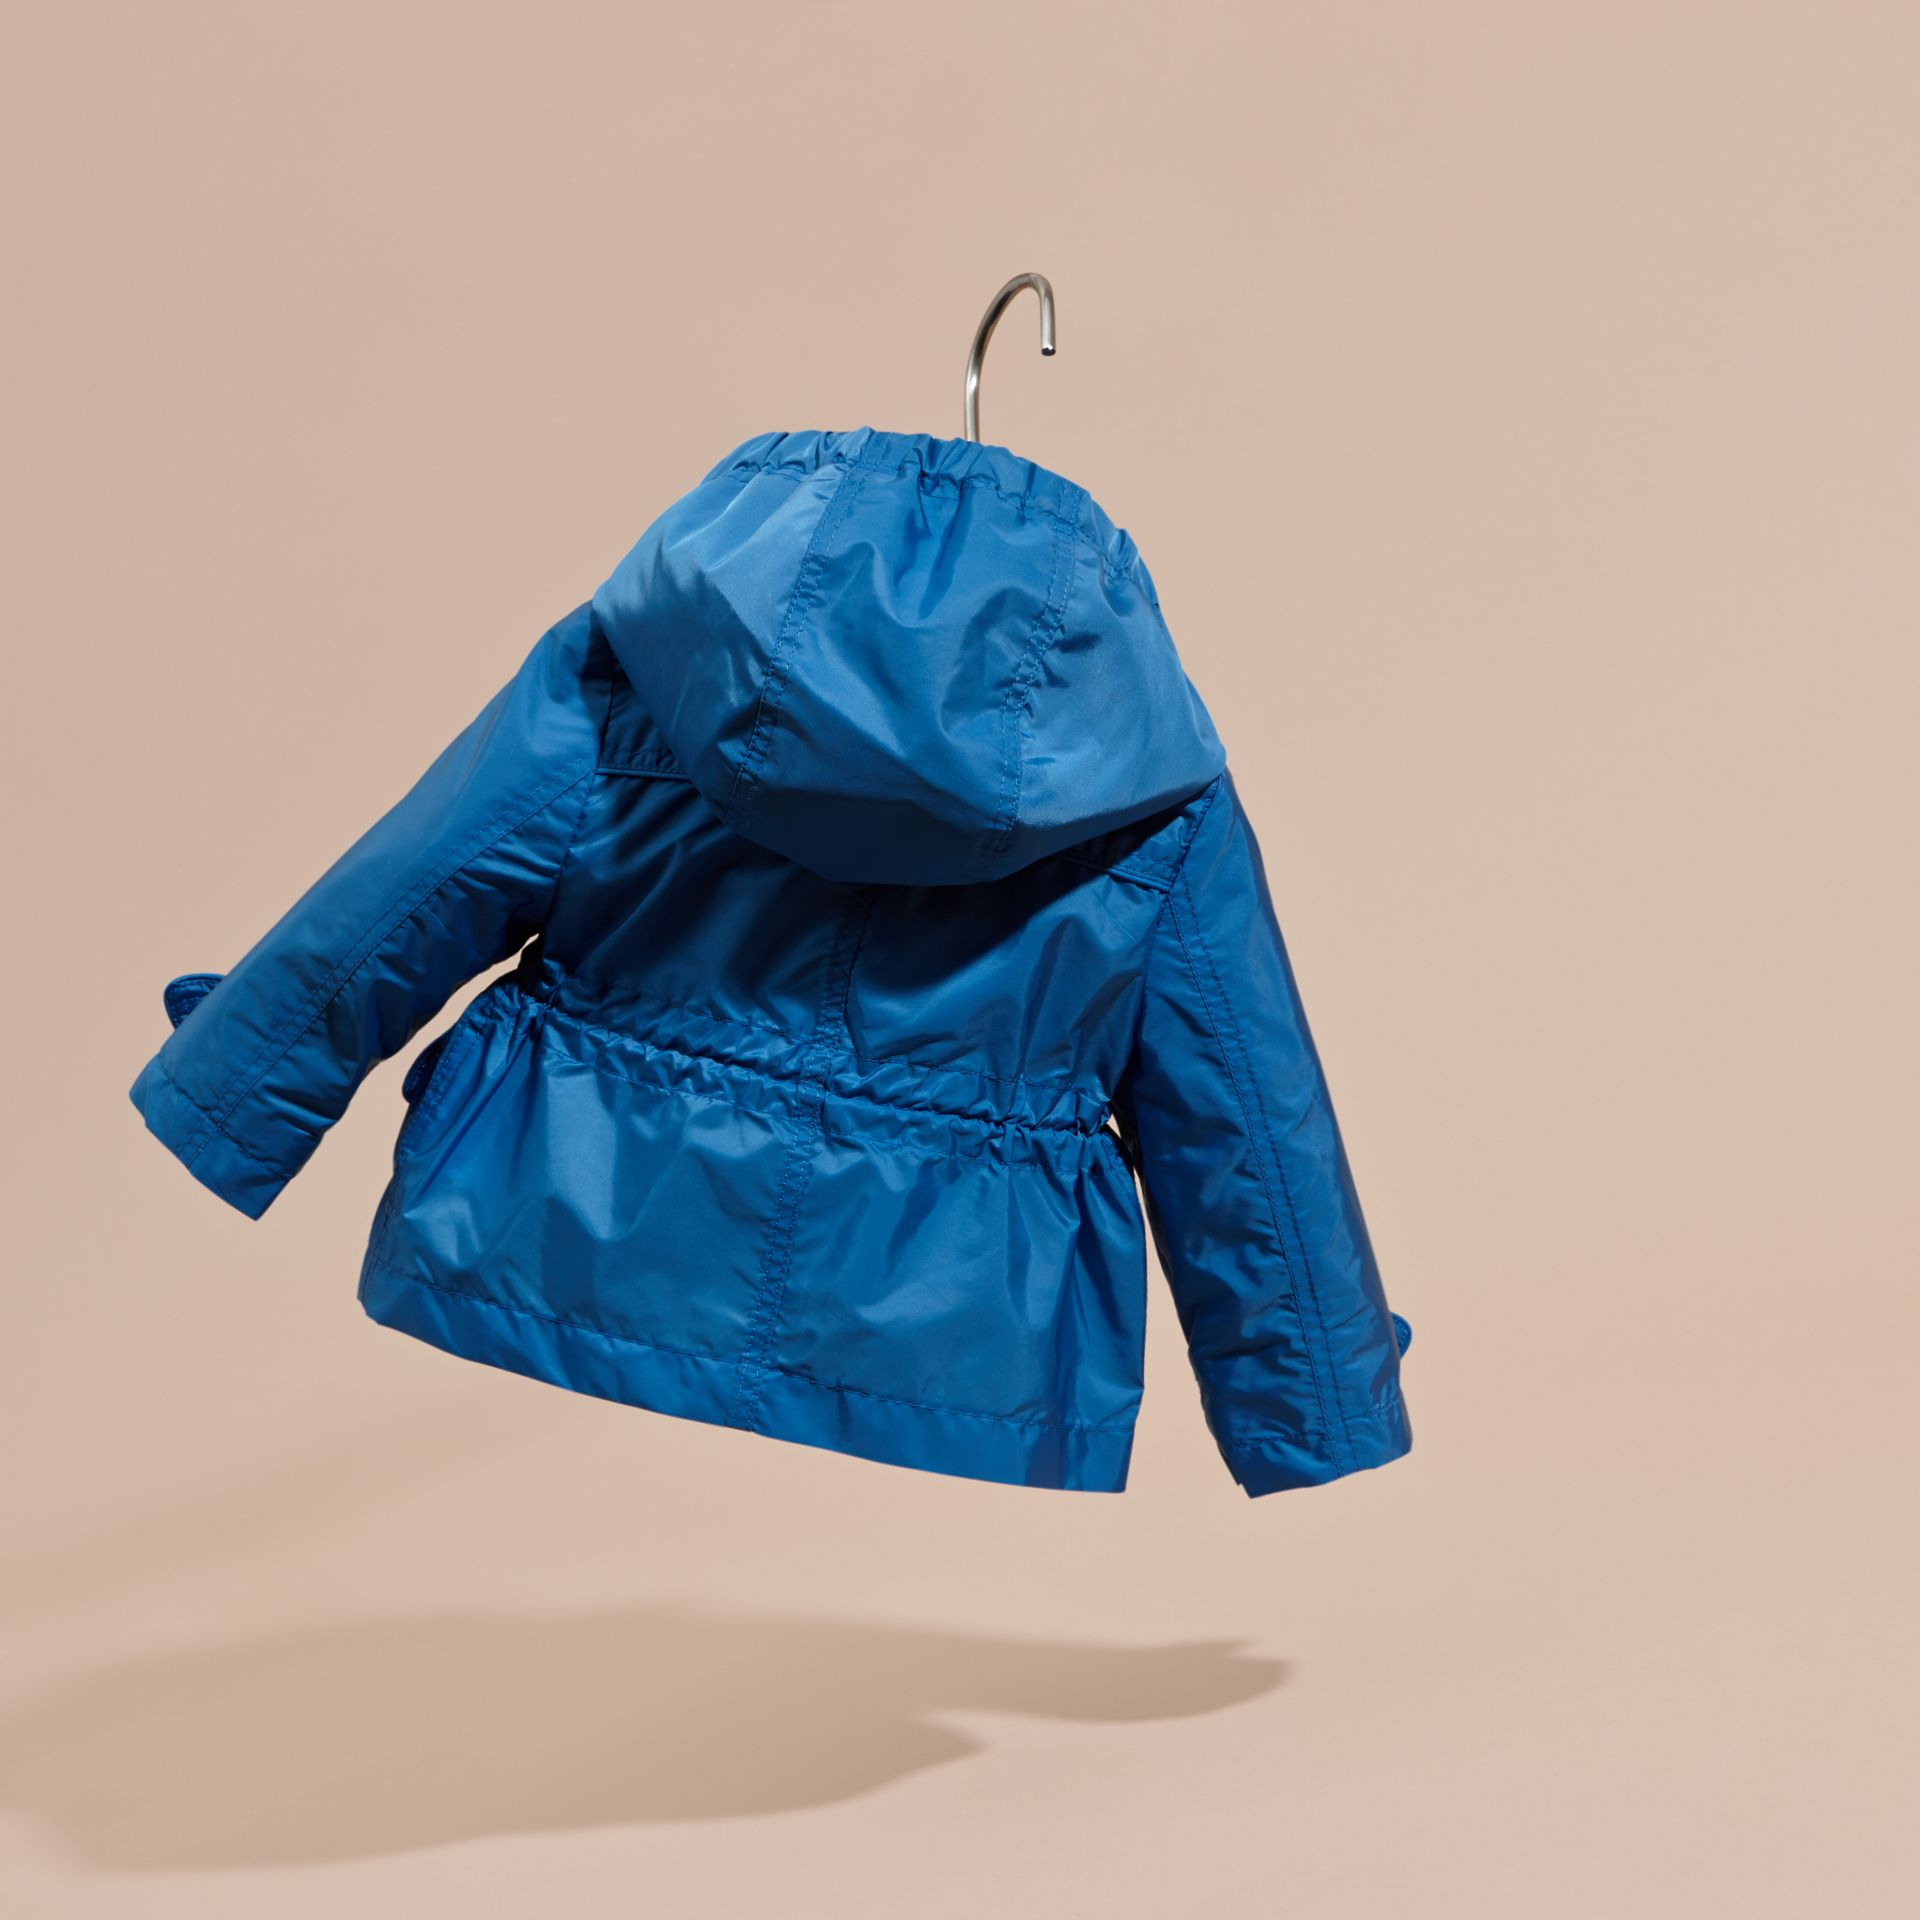 Hooded Packaway Technical Jacket in Hydrangea Blue - gallery image 4